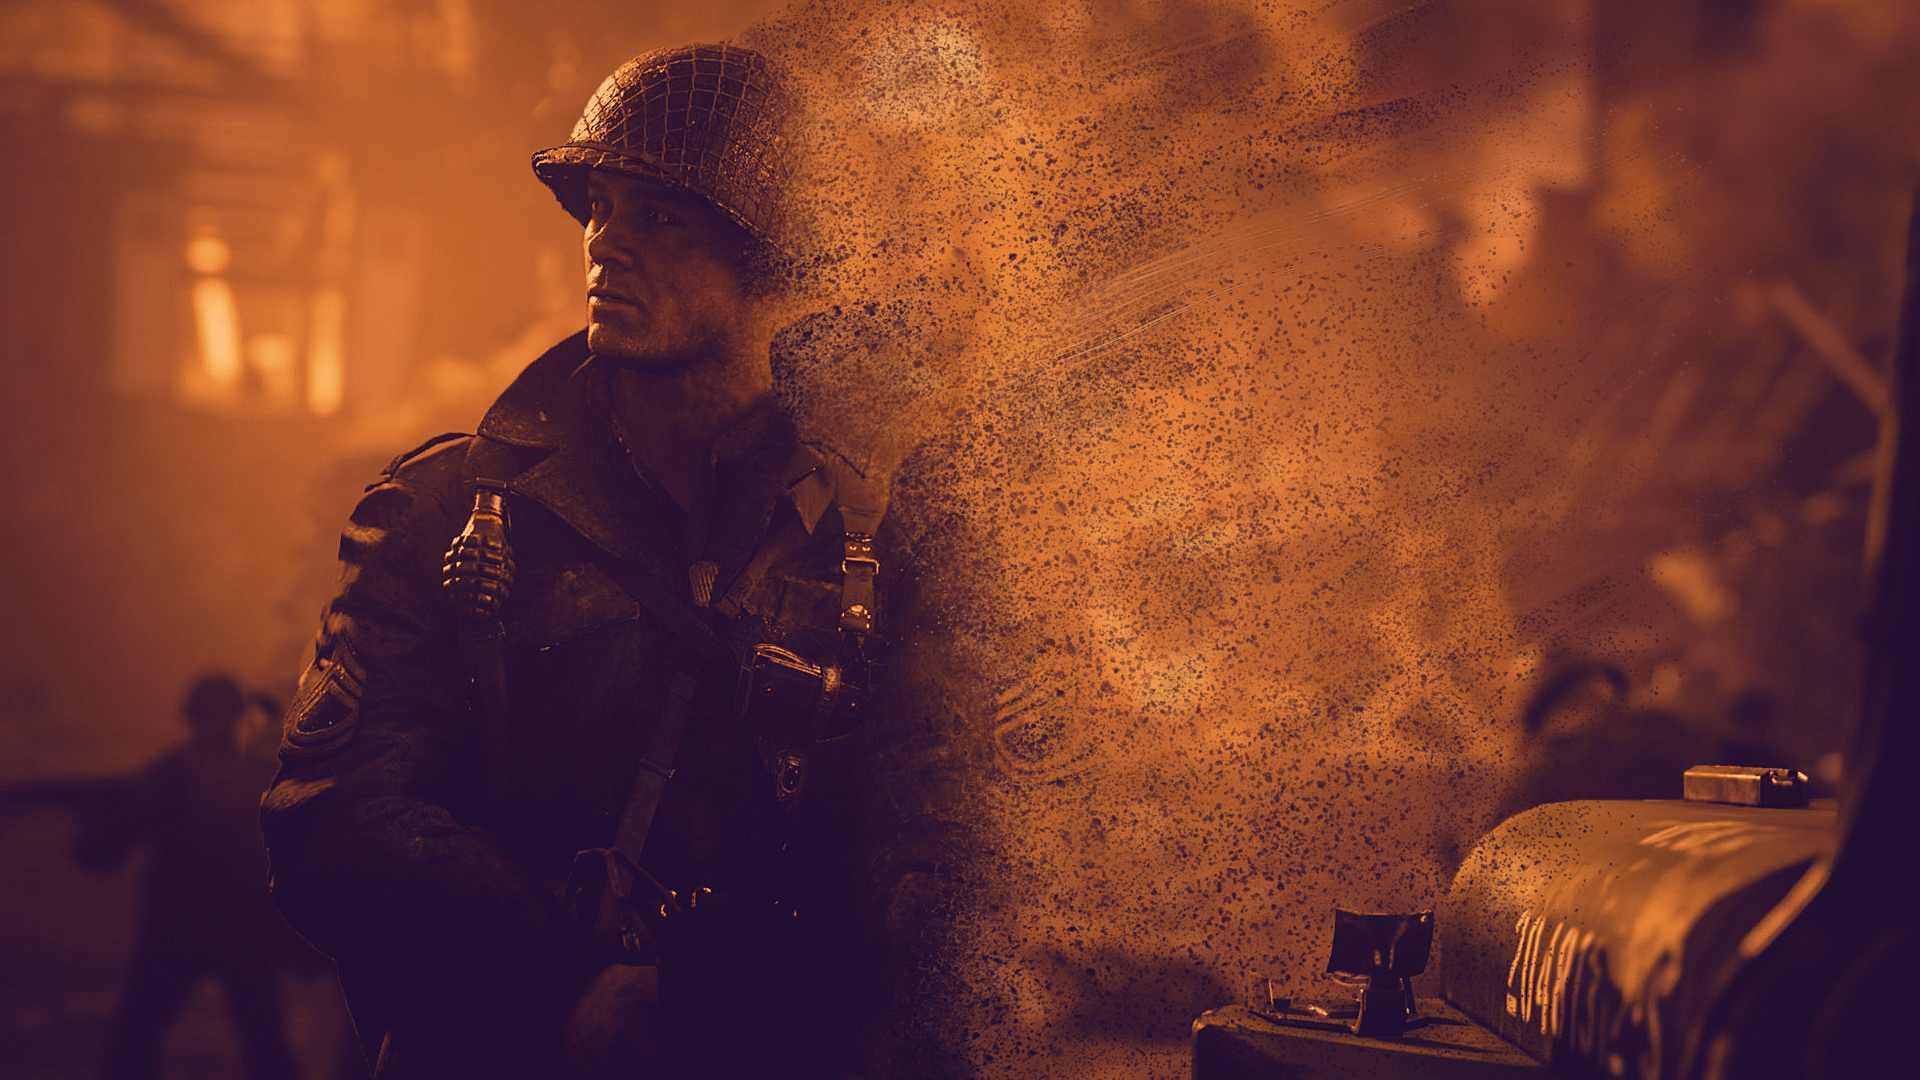 Call of duty wwii hd wallpaper background image - Cod ww2 4k pc ...